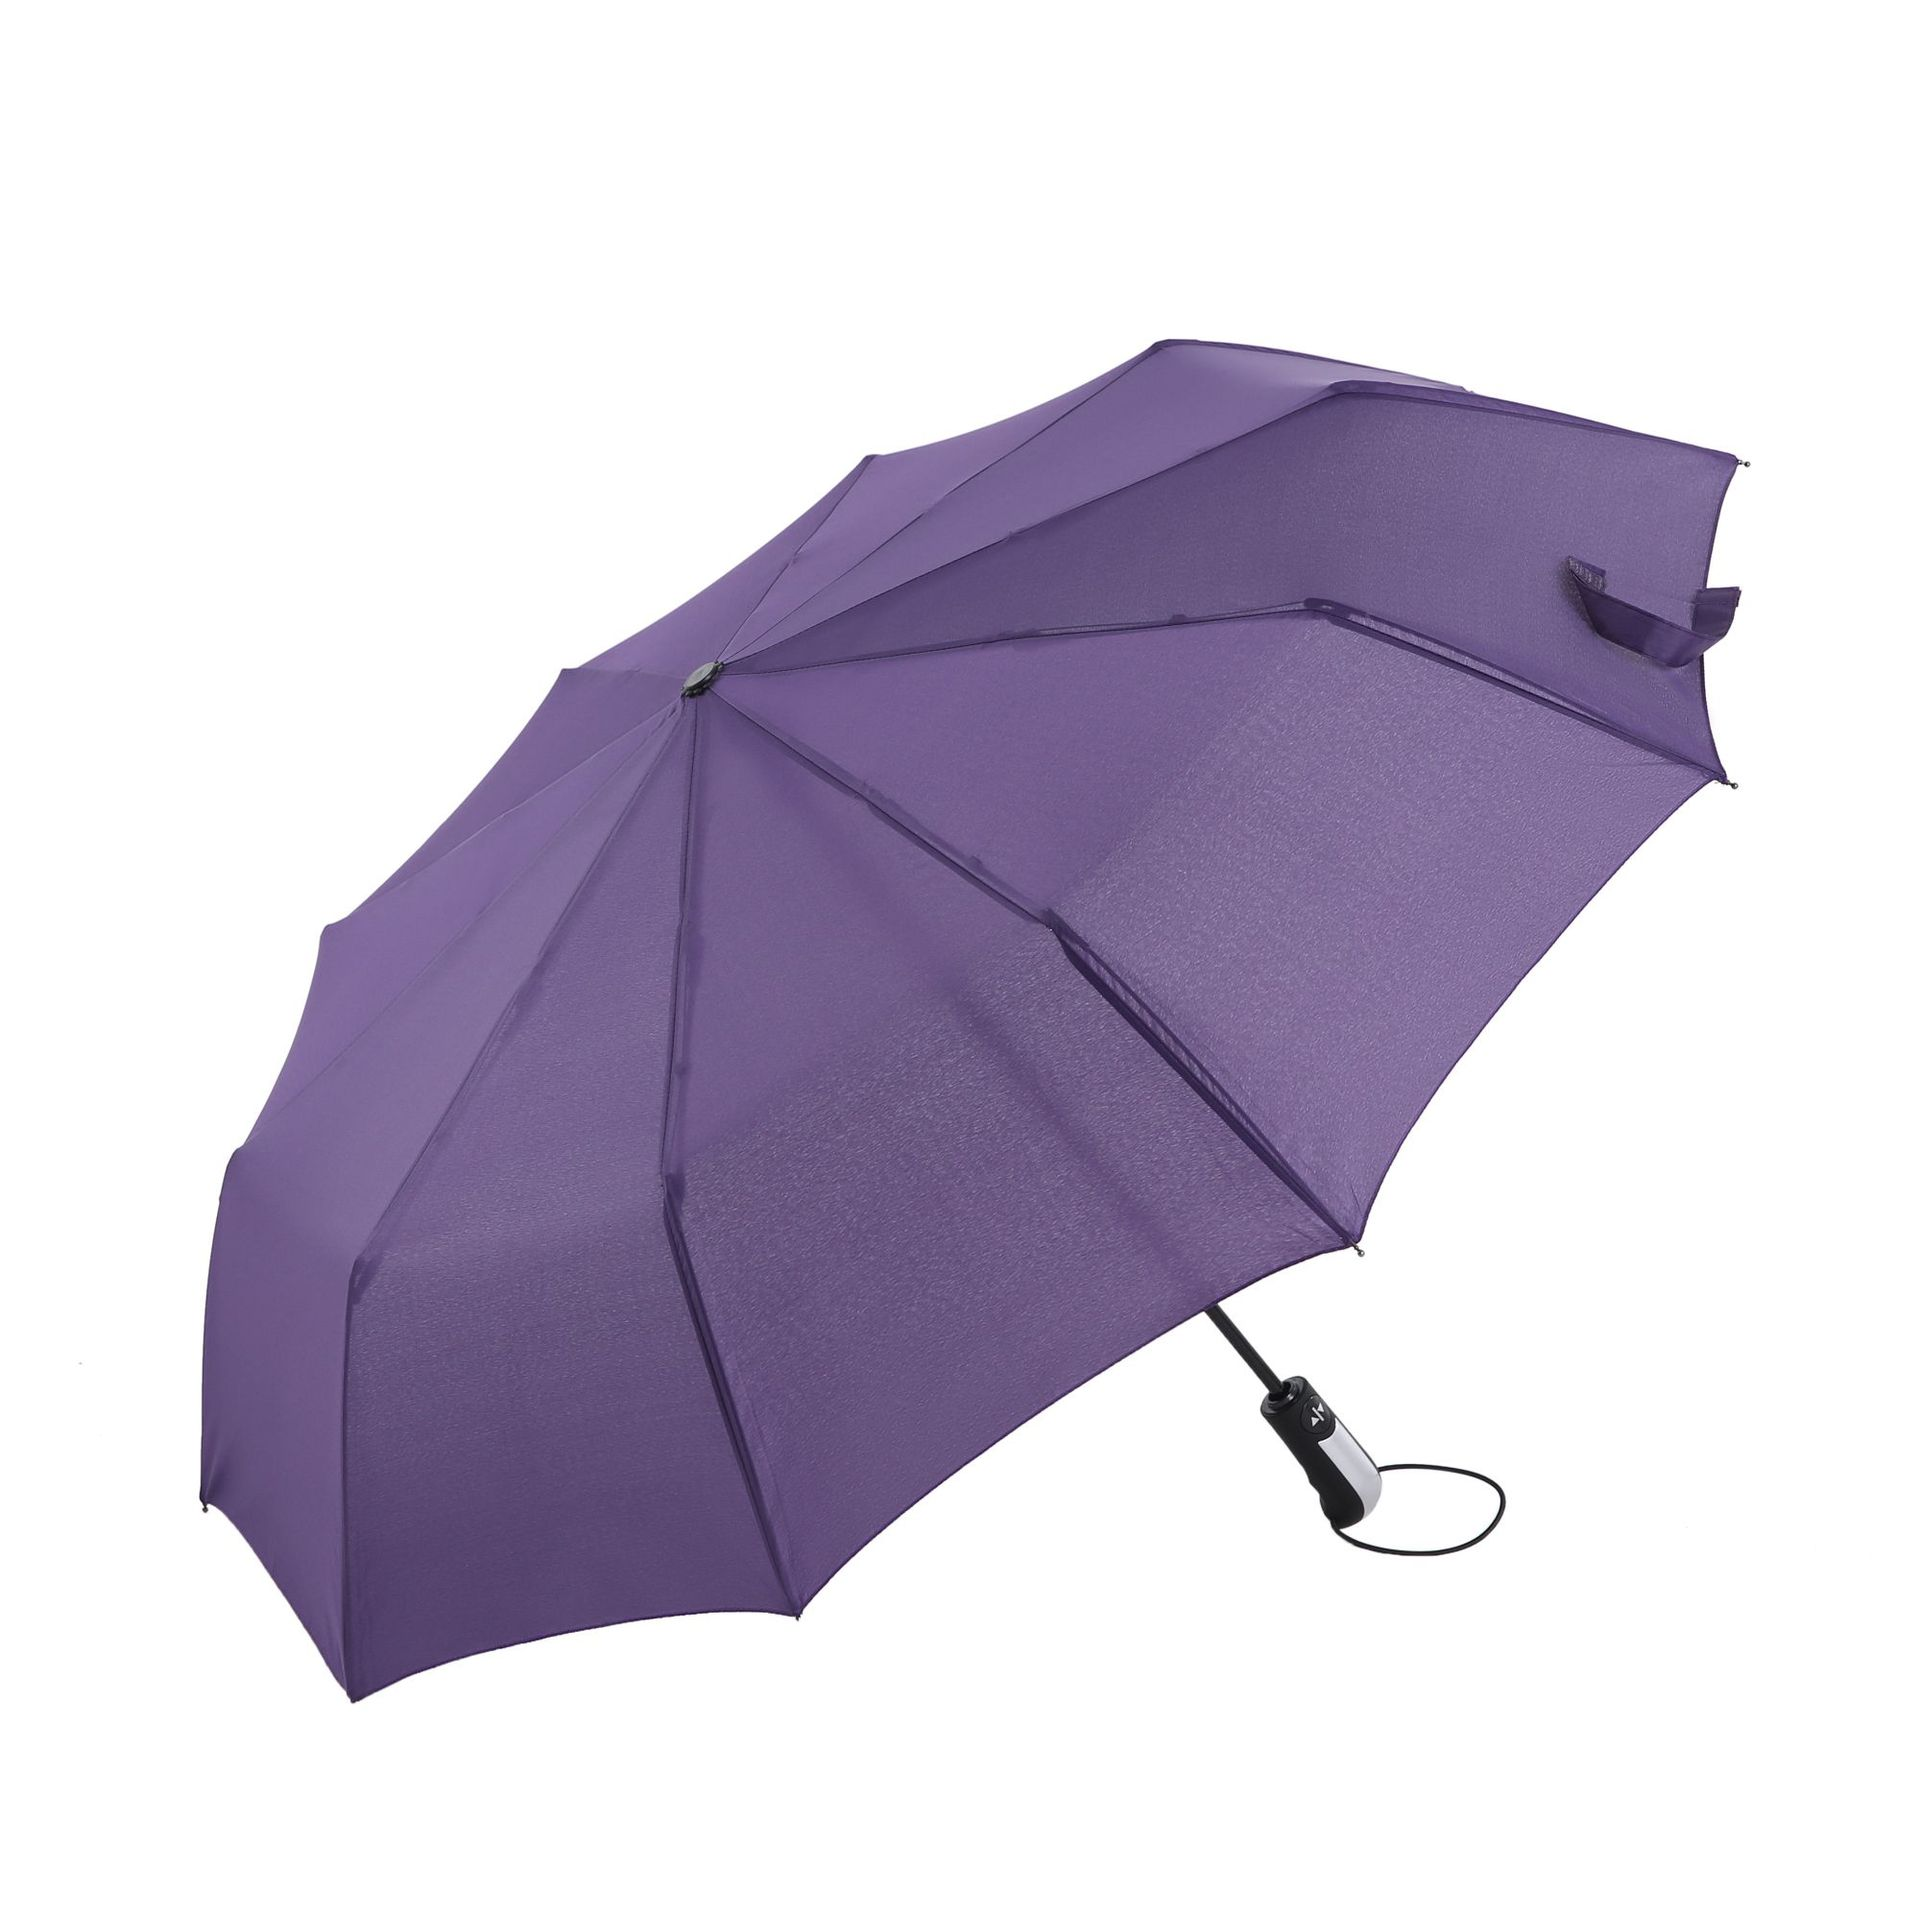 Fabric Promotional Umbrellas with LOGO Printing